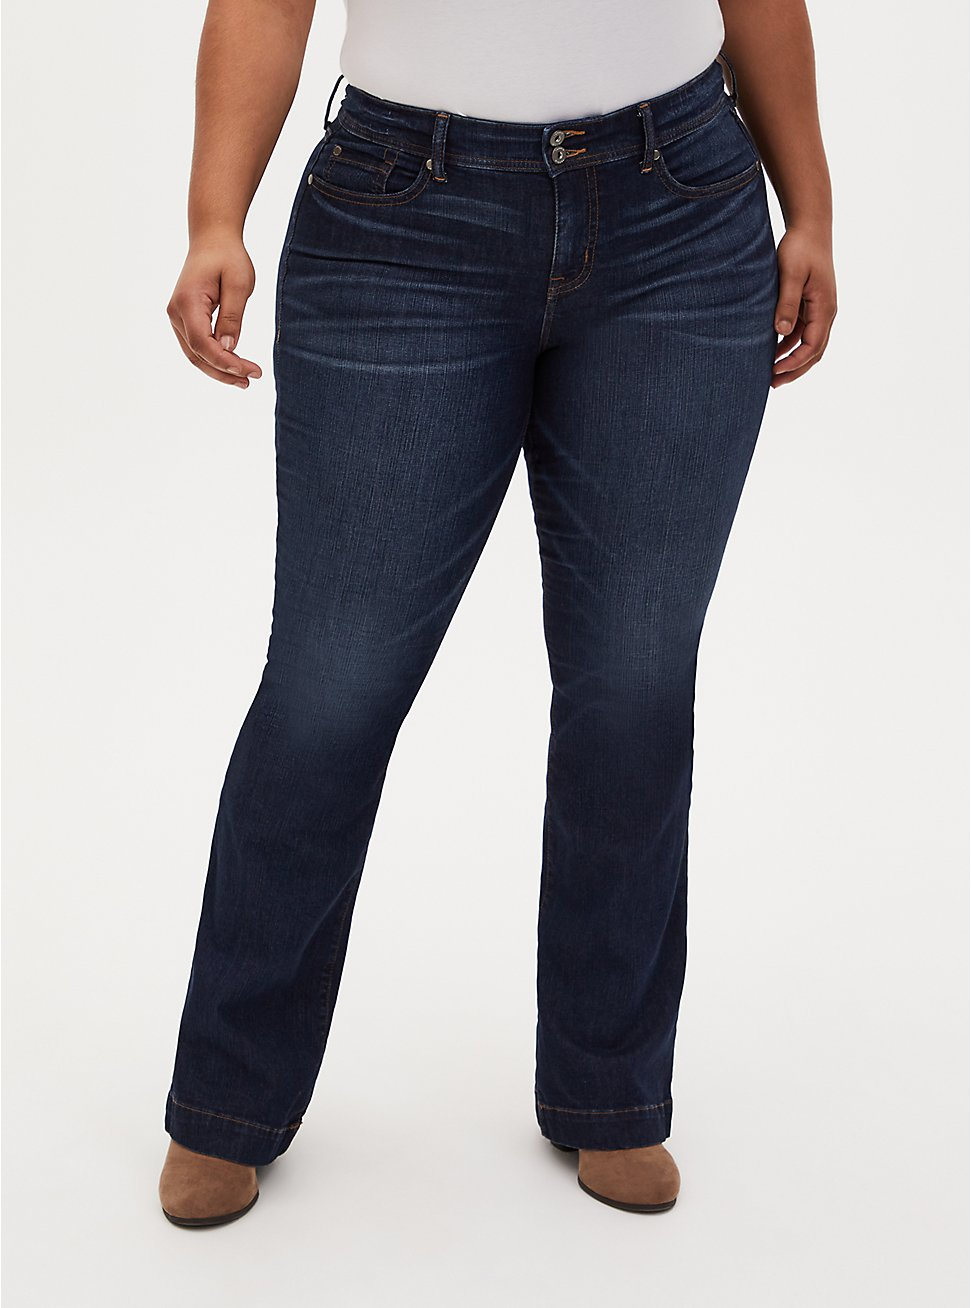 Mid Rise Flare Jean - Vintage Stretch Dark Wash, KEEP IT 100, hi-res